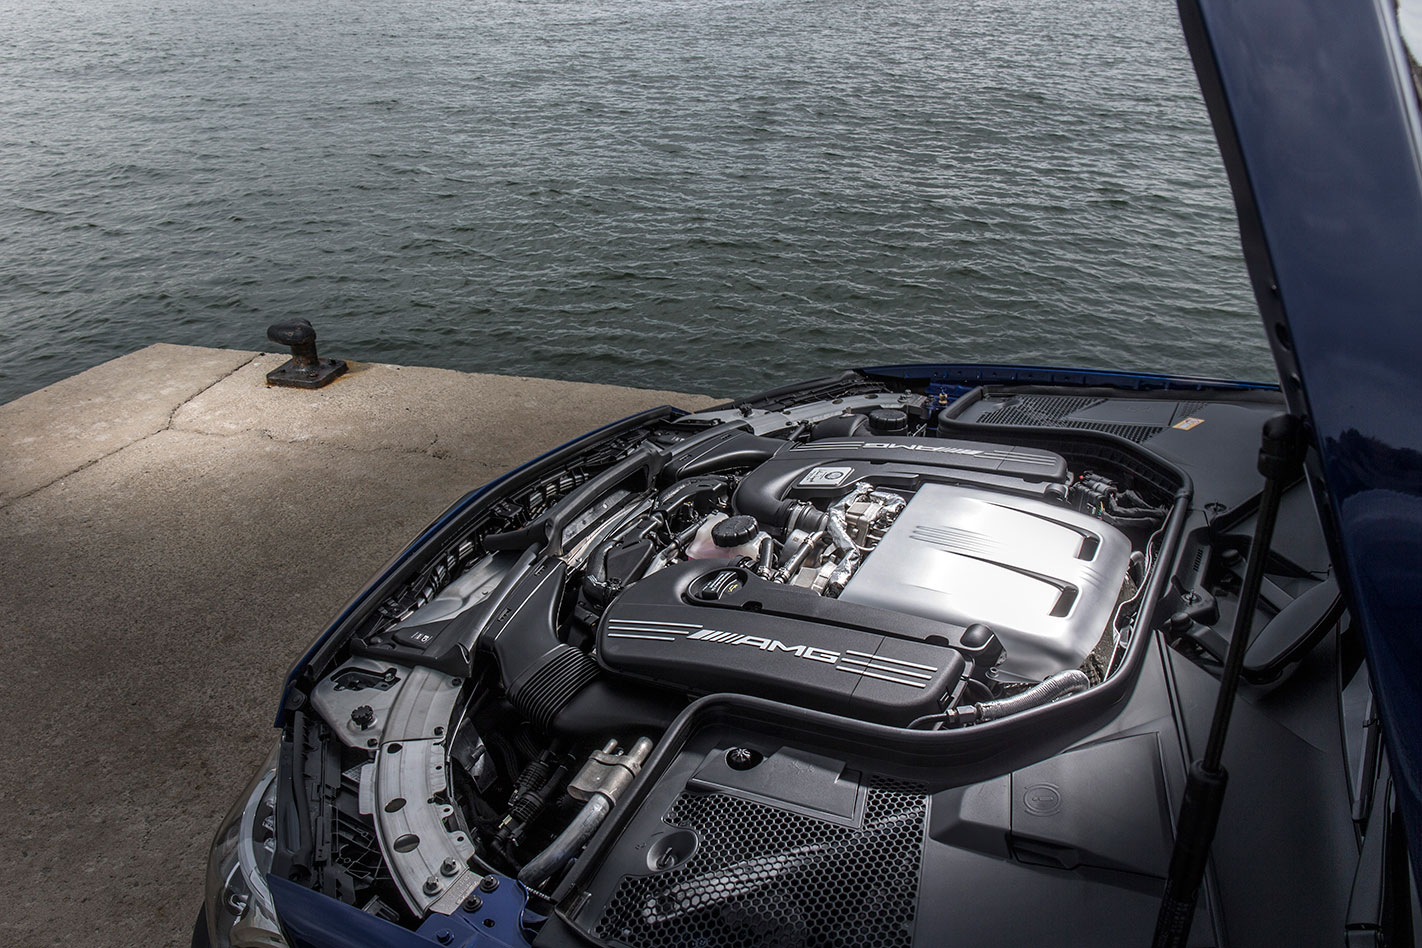 Mercedes -AMG-C63-S-Coupe -engine